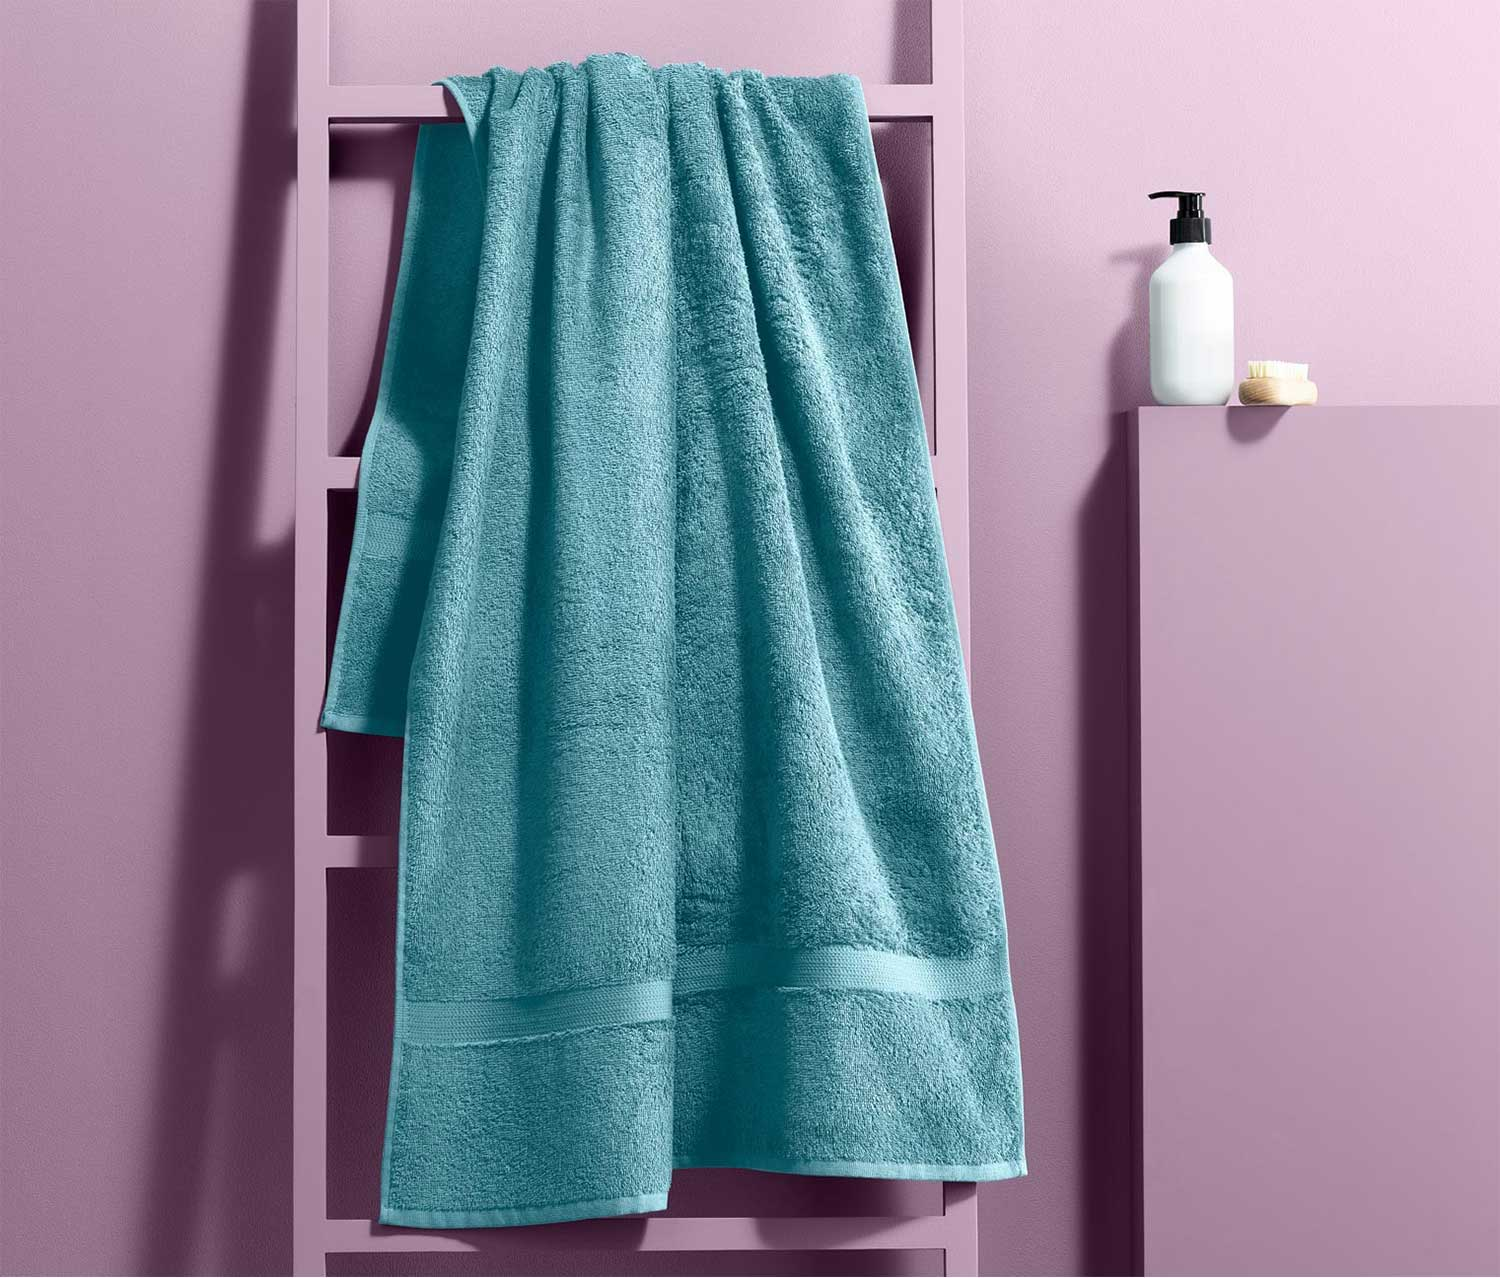 Bathtowel, Aqua Blue